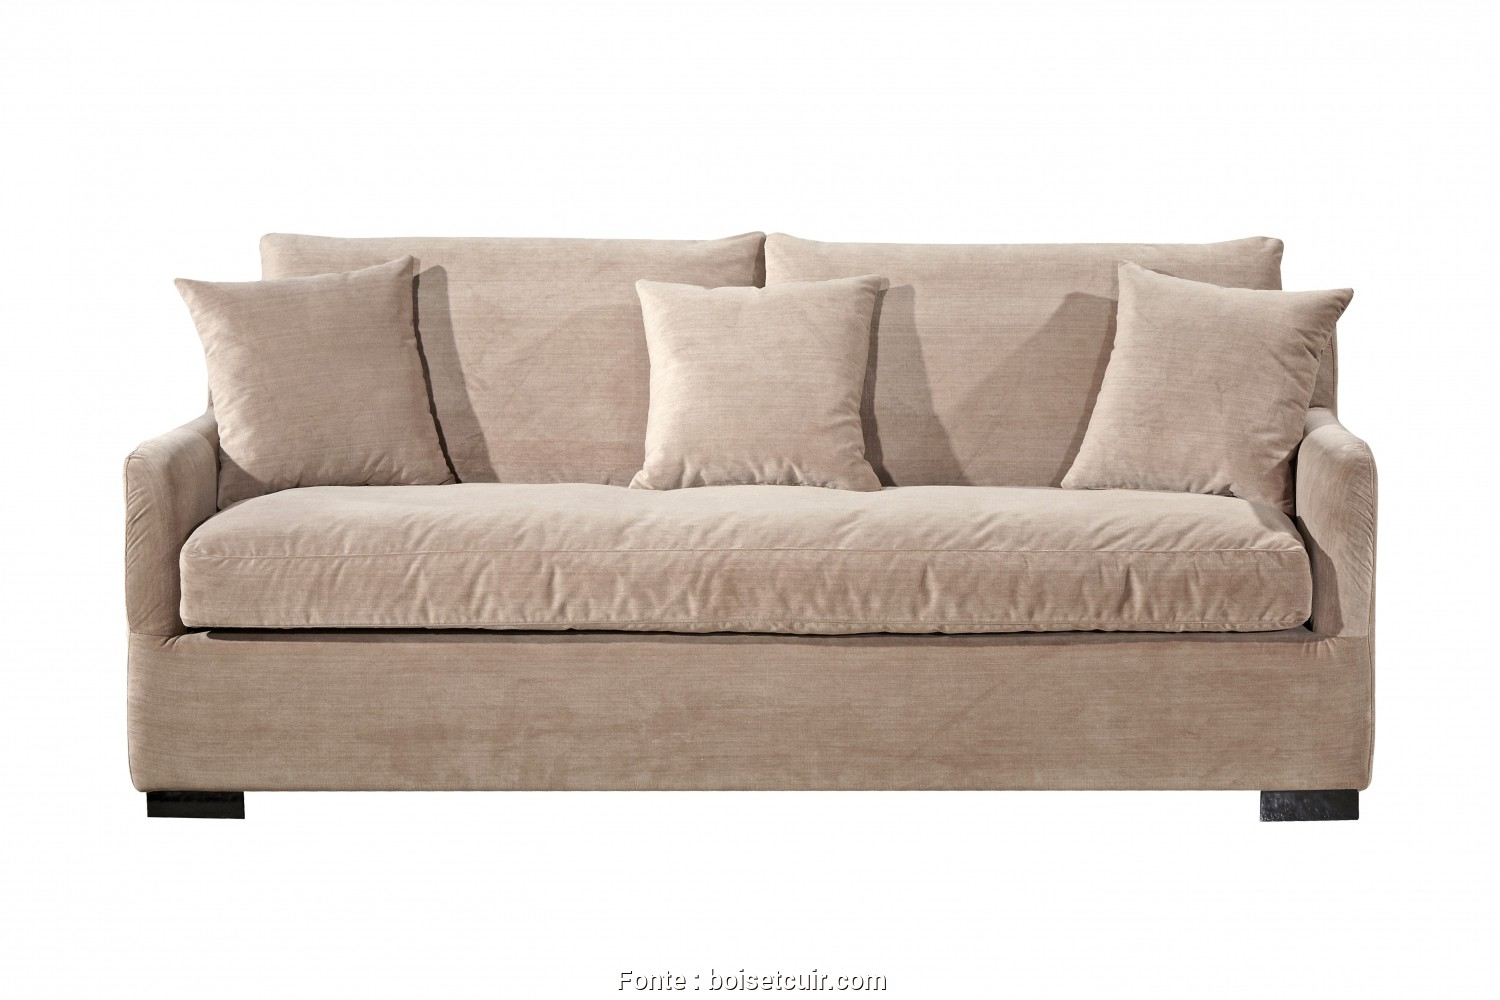 Divano Beige, Migliore Divano 1 Seater Sofa (Upholstered Polyester/Polyamicd(79*35*34)